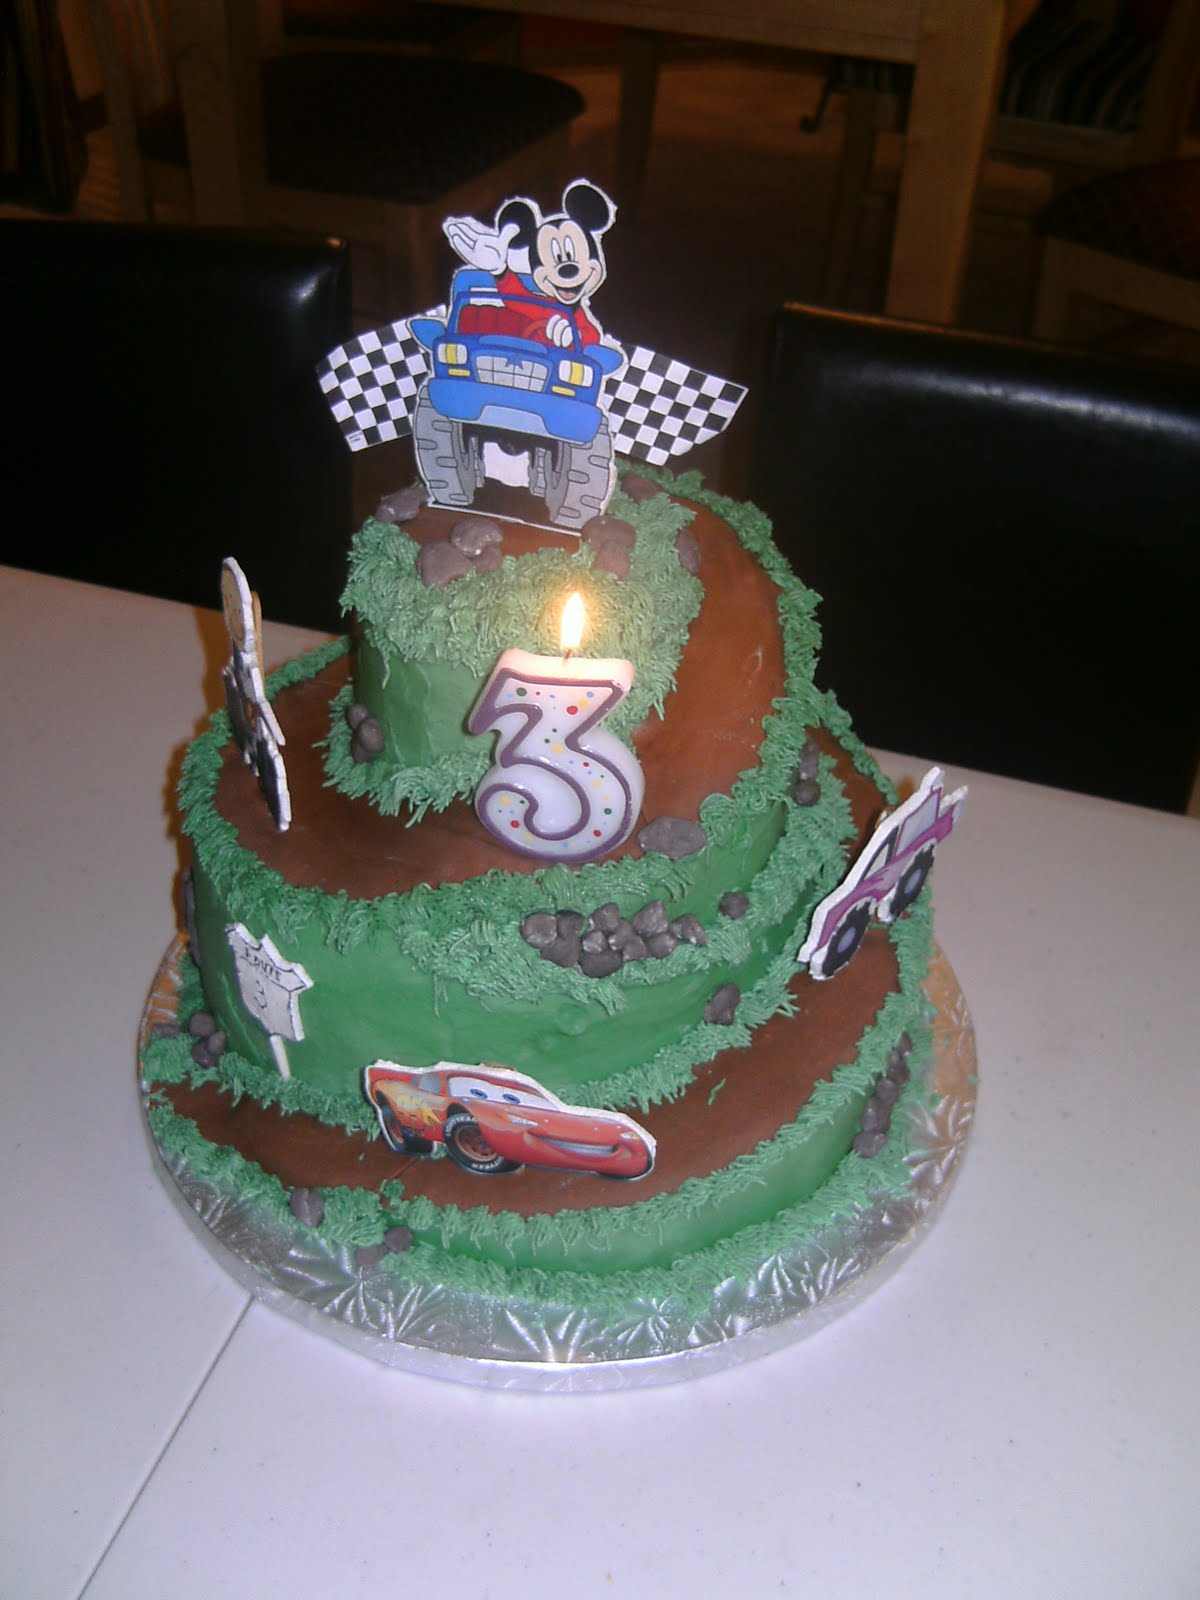 Road Bike Cake Decoration : Le Mie Cose Favorites: Carved Race Track: Dirt Bike ...